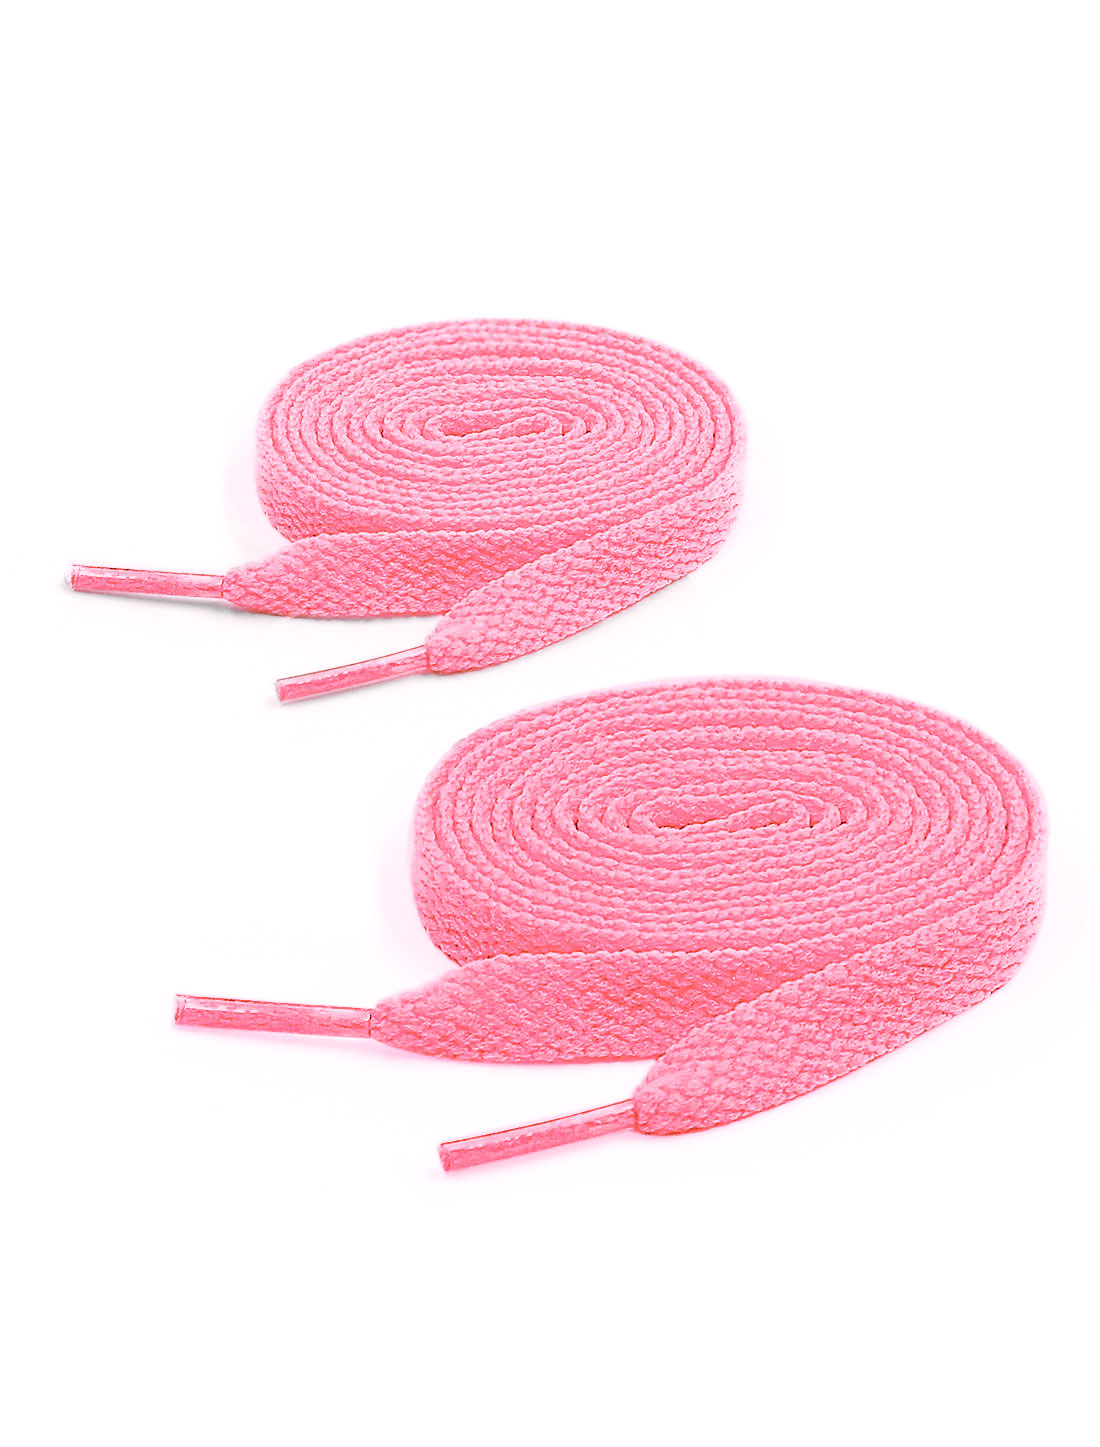 Unisex 123cm Length 2 Pairs Plastic Tip Flat Sneakers Walking shoes Laces Pink